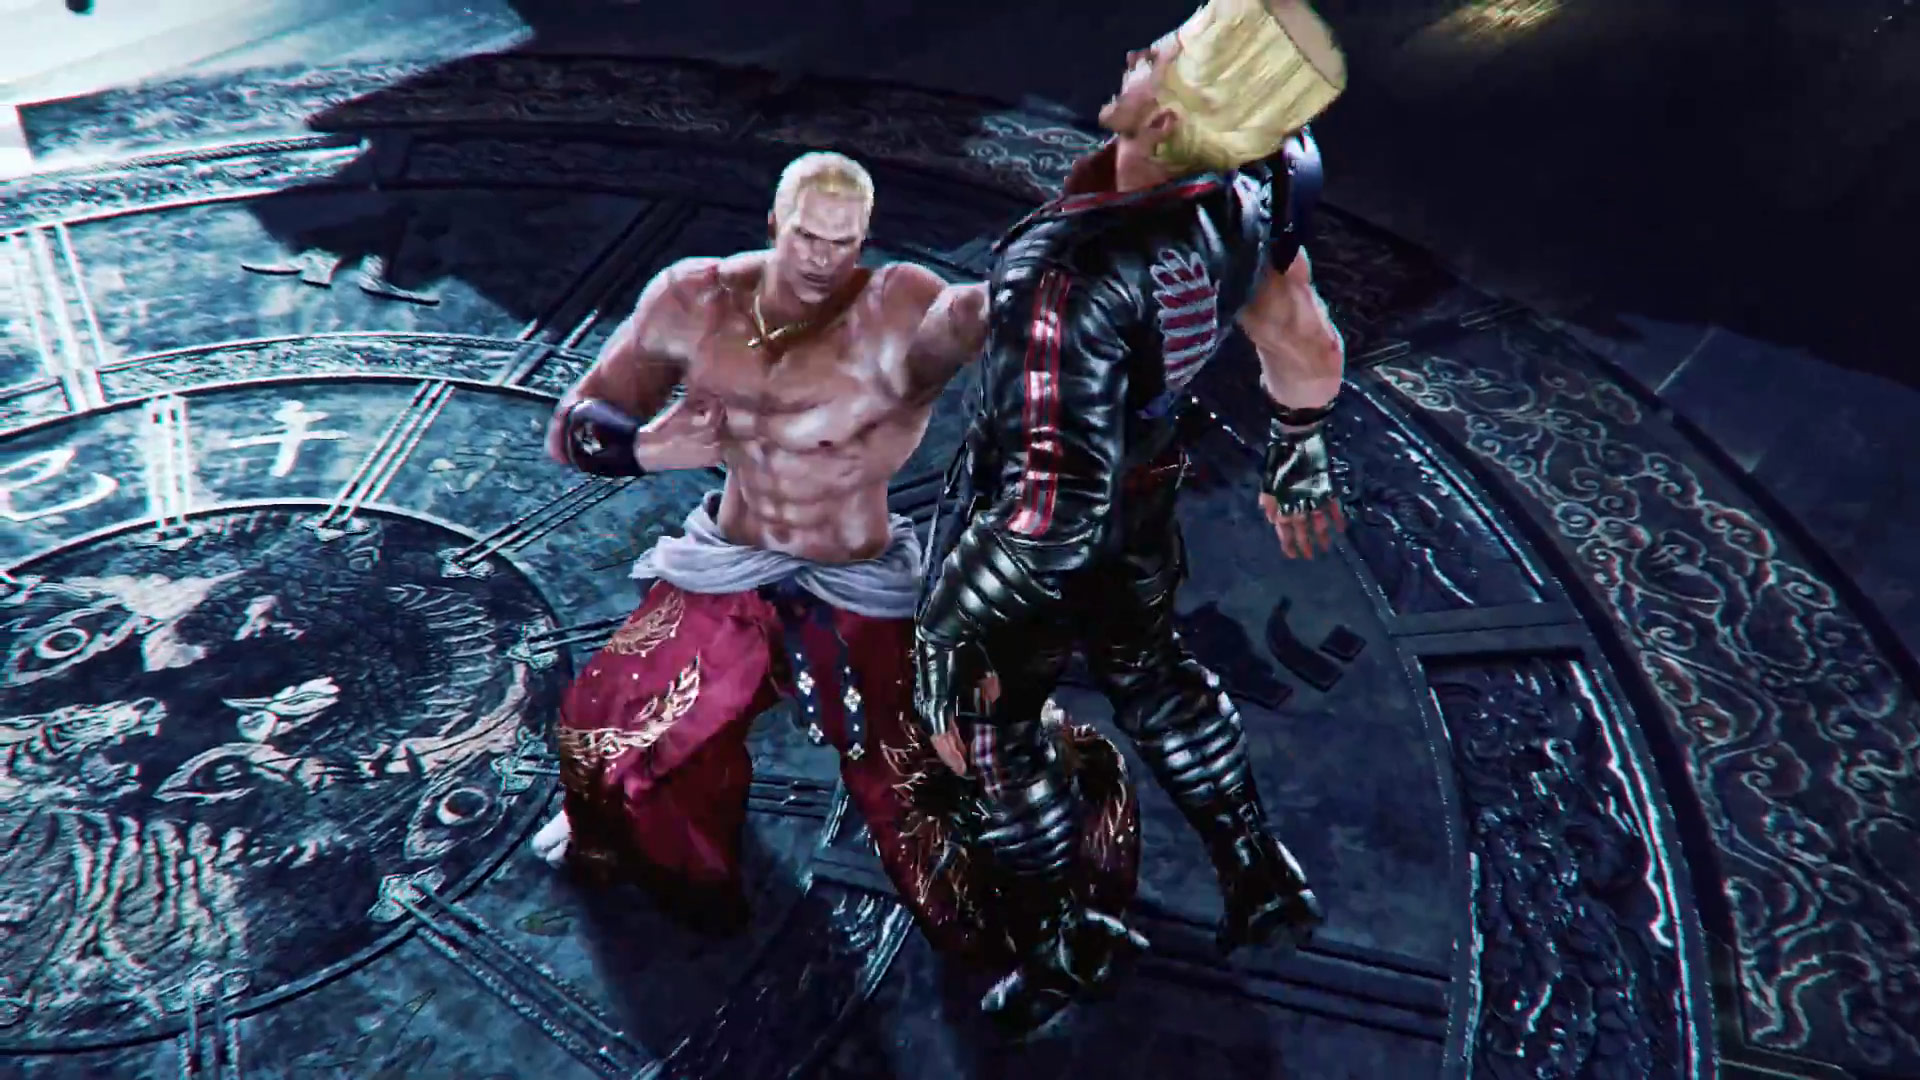 Geese Howard Tekken 7 screen shots 6 out of 9 image gallery